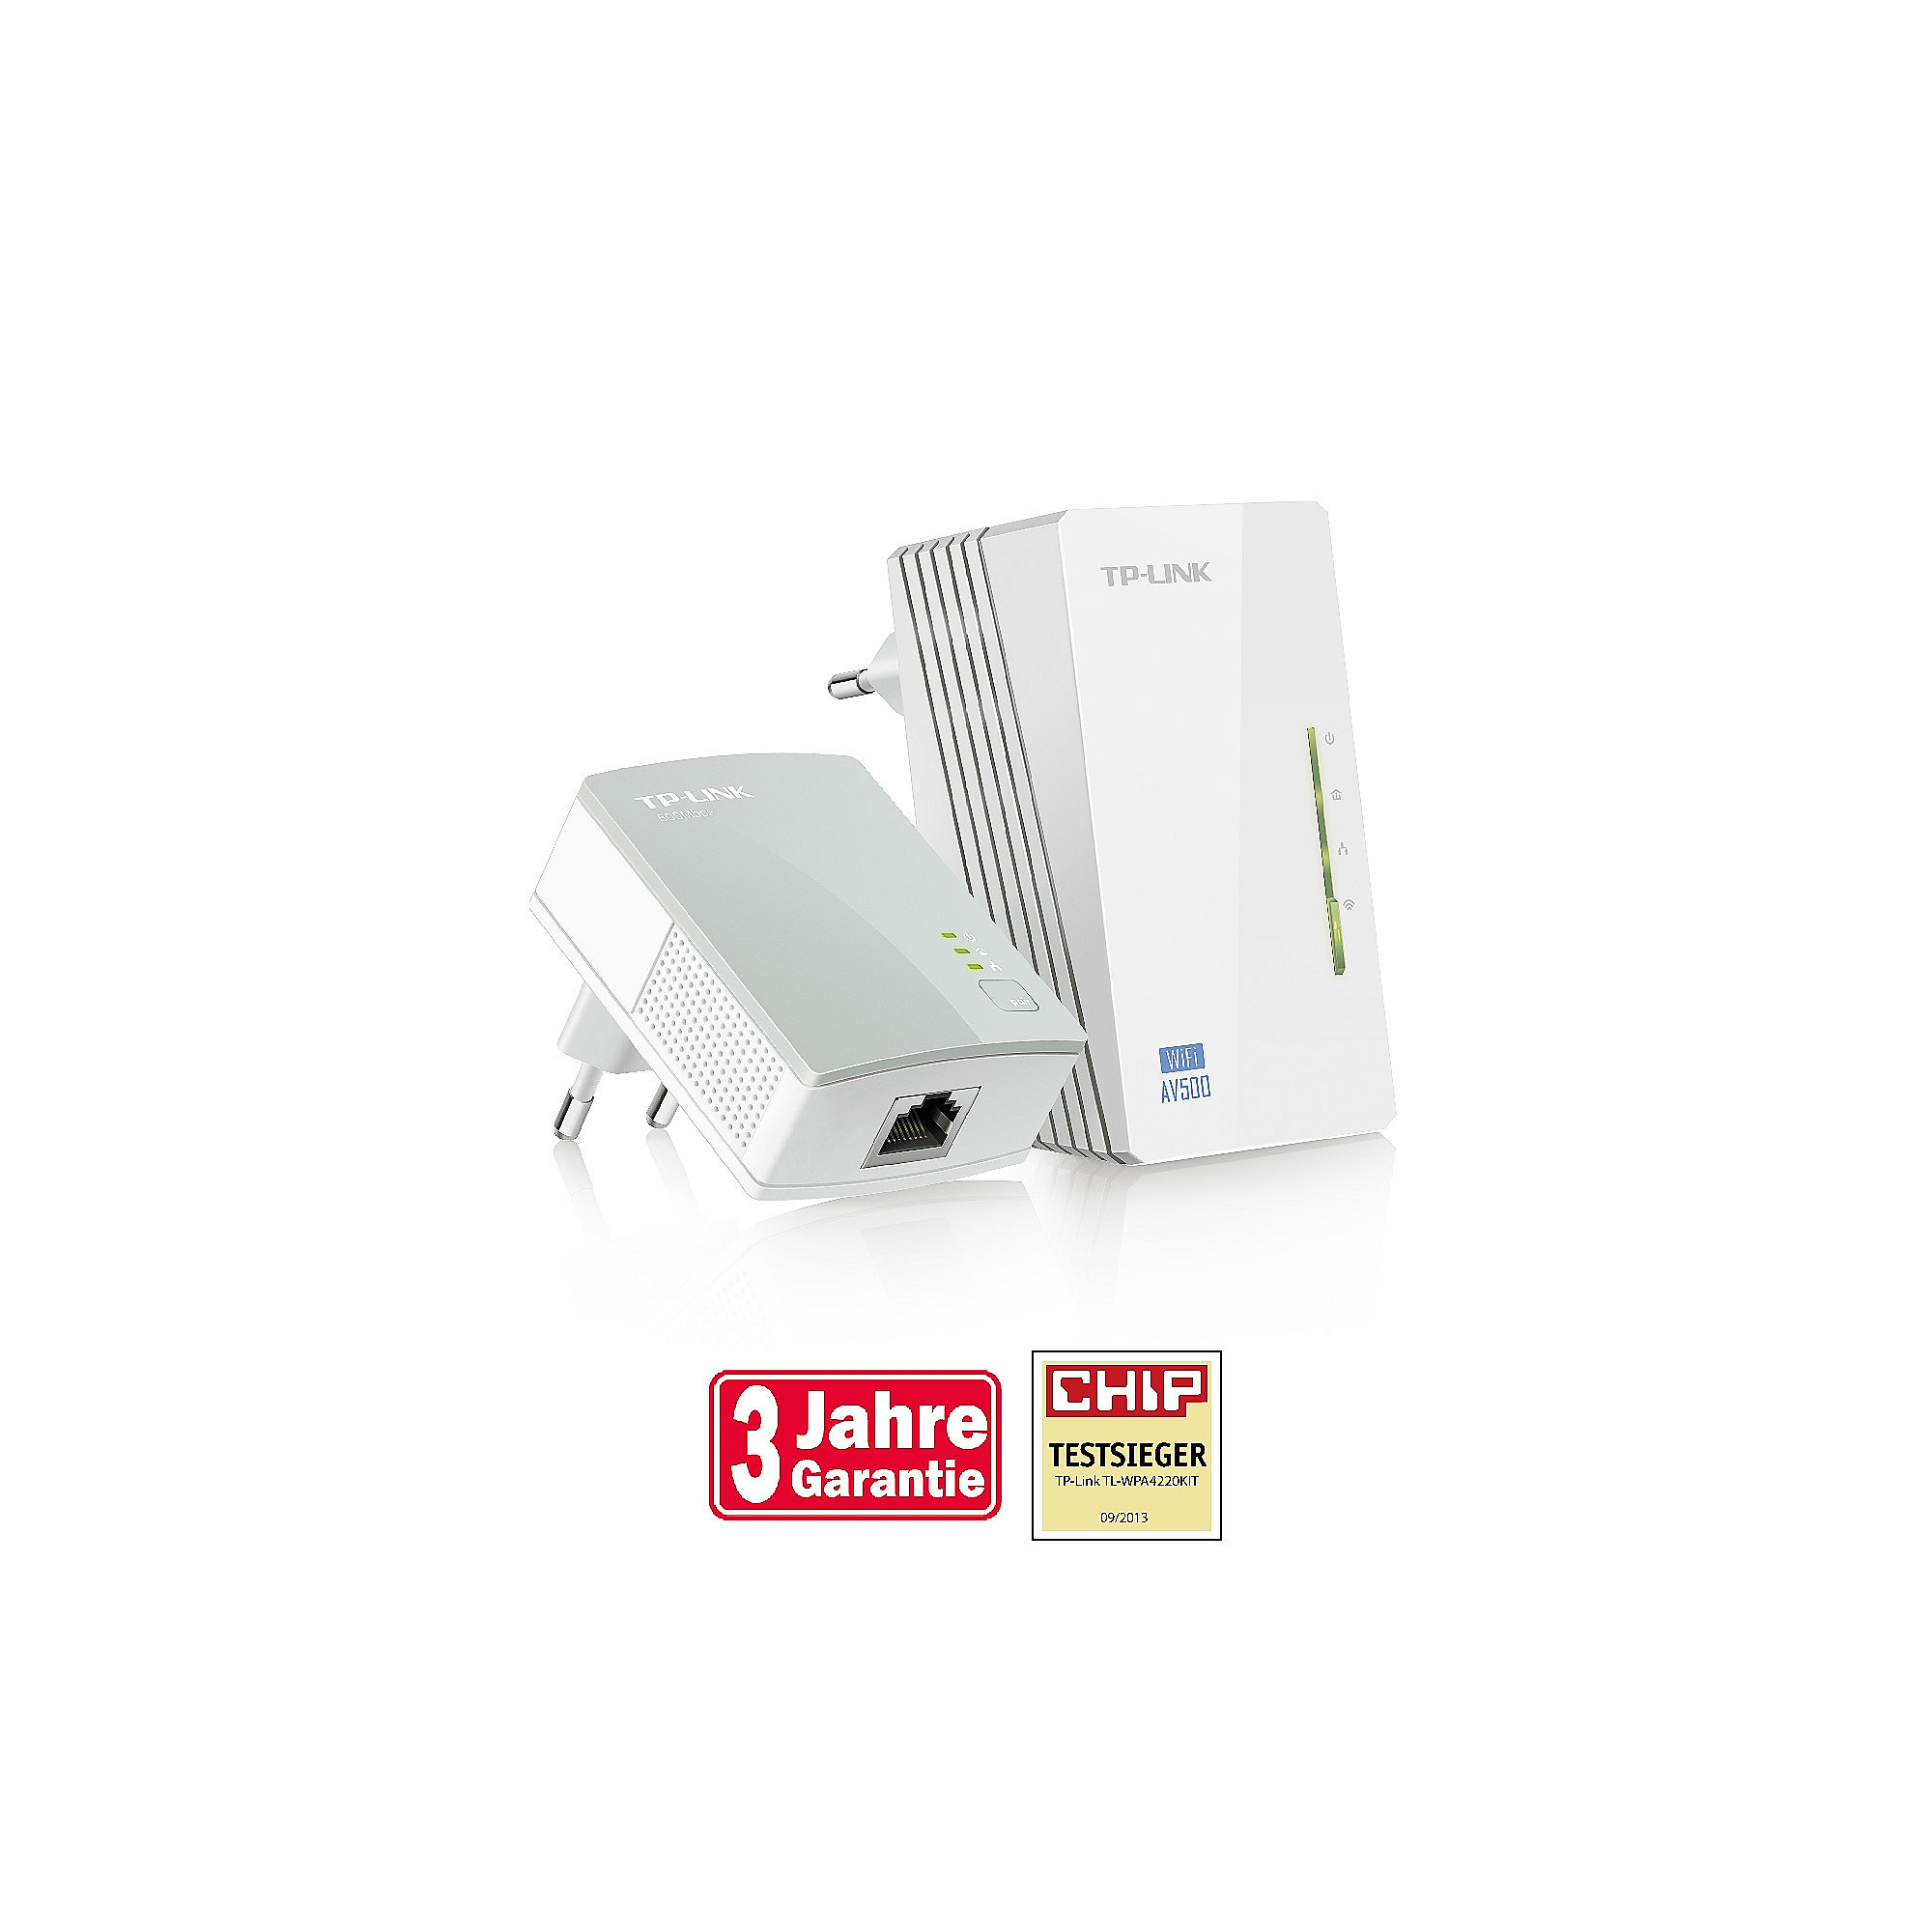 TP-LINK 300Mbps-AV500-WLAN-Powerline-Extender Kit mit 2 Fast-Ethernet-Ports